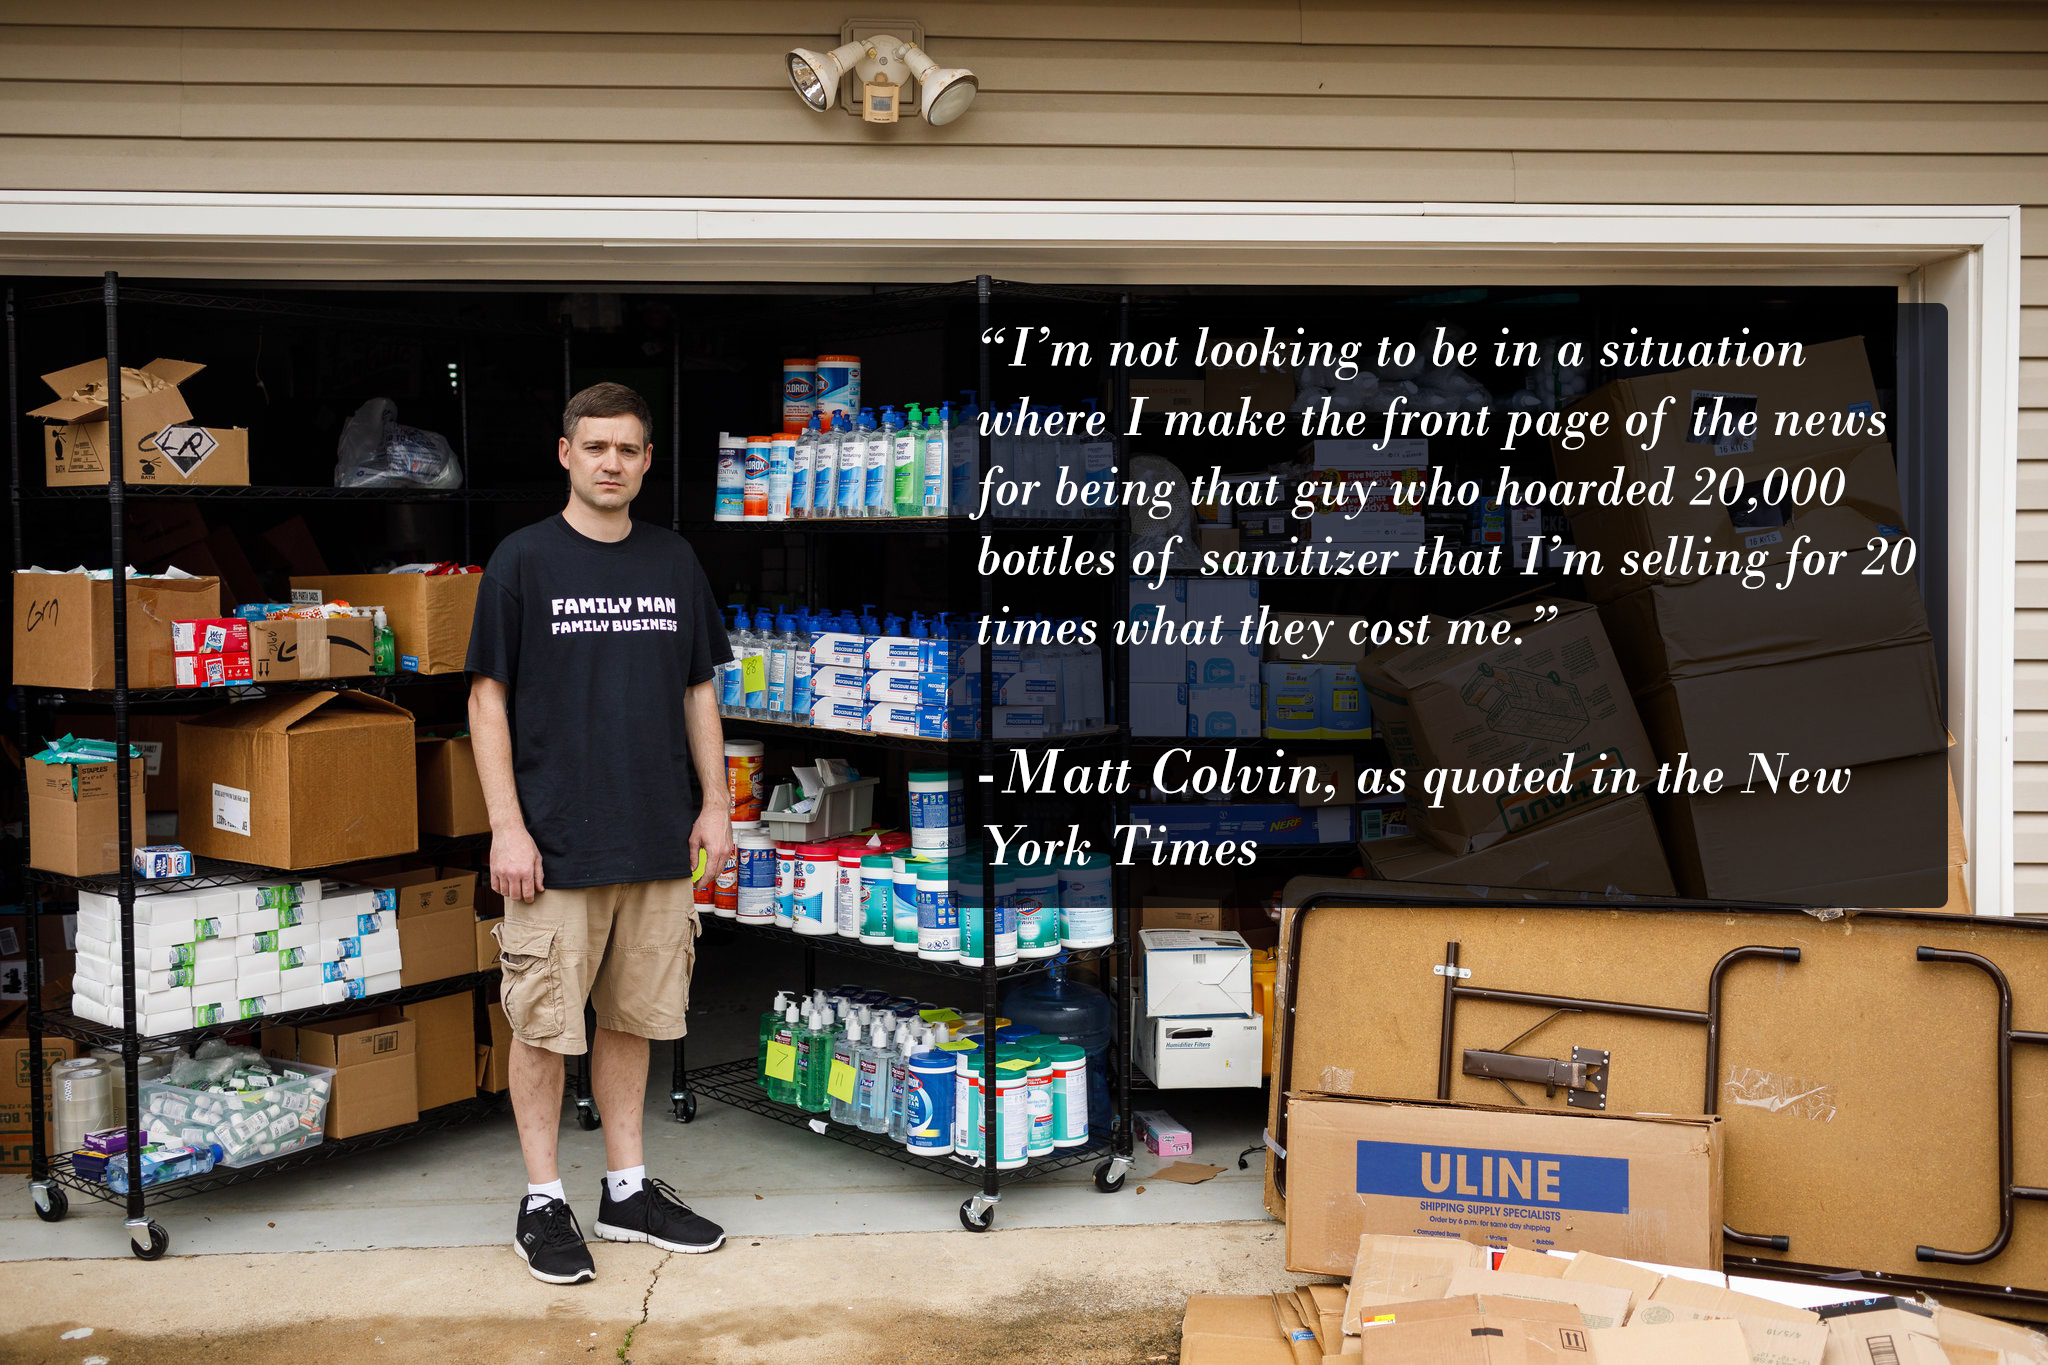 """I'm not looking to be in a situation where I make the front page of the news for being that guy who hoarded 20,000 bottles of sanitizer that I'm selling for 20 times what they cost me."" -Matt Colvin [2048×1365]"